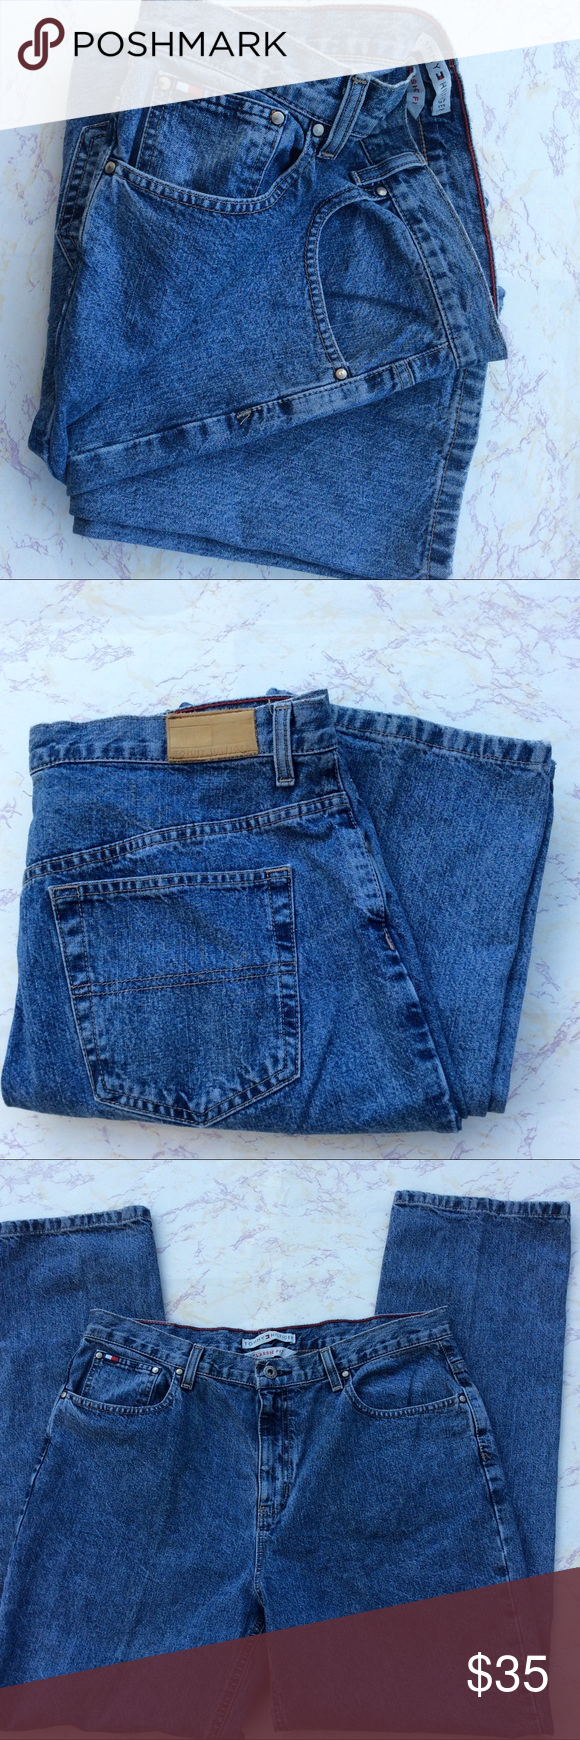 Tommy Hilfiger Classic Fit Jeans Tommy Hilfiger Classic fit blue jeans. 100% Cotton. Size 14. Waist 34. Inseam 31. Rise 11. Great condition. Tommy Hilfiger Jeans